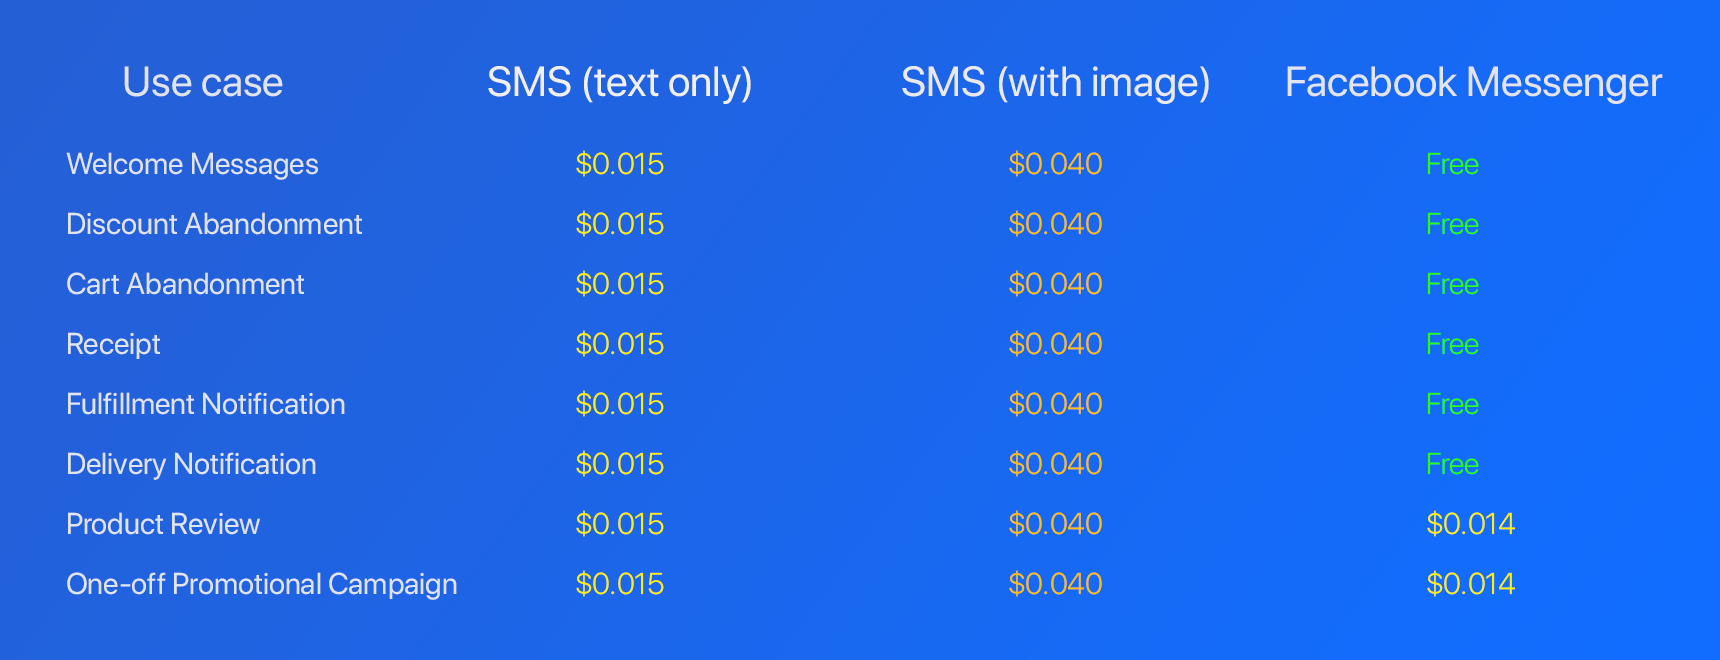 messenger vs sms costs 1